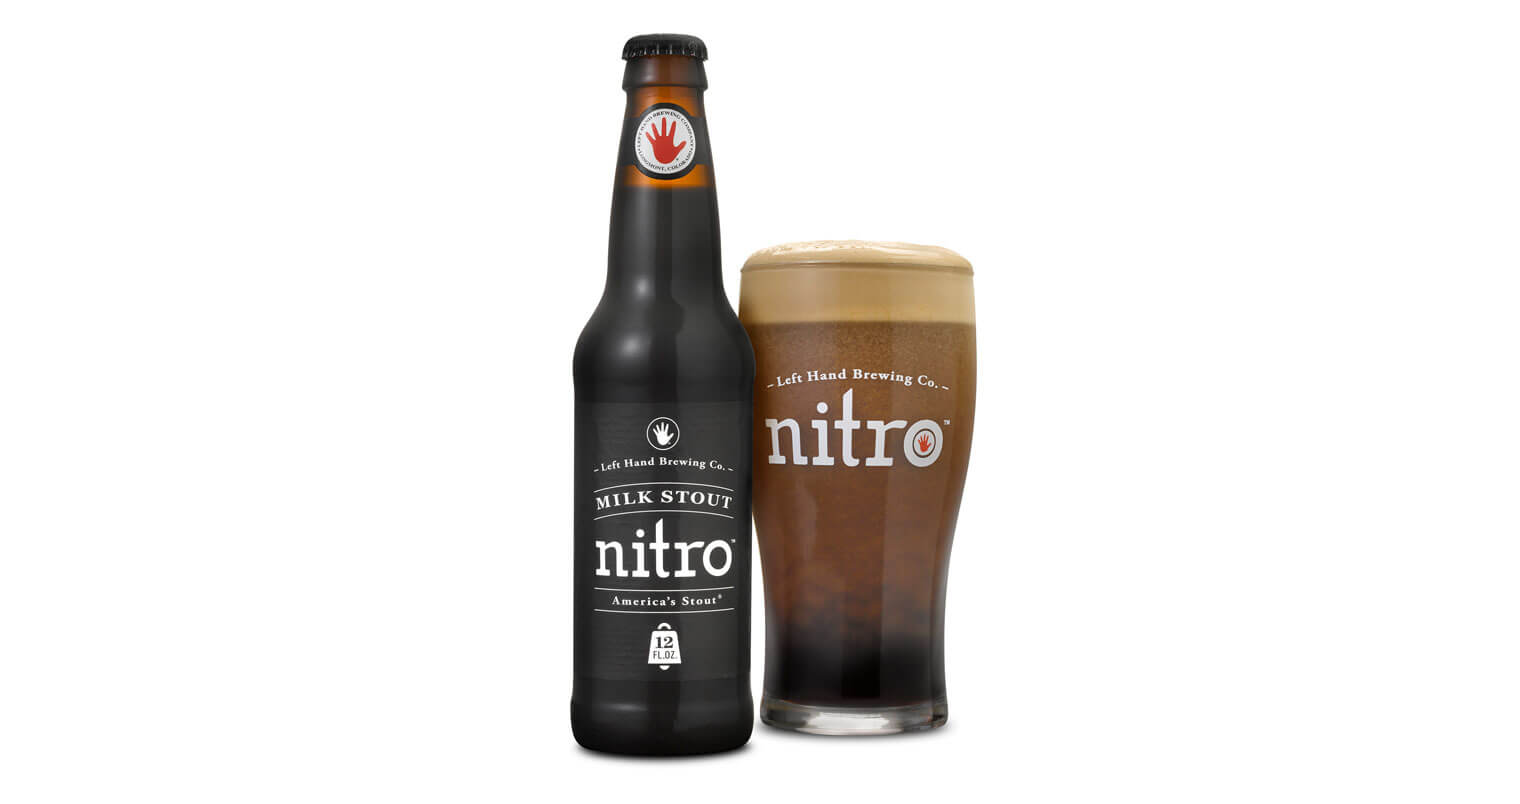 Toast St. Patrick's Day with Milk Stout Nitro, featured image